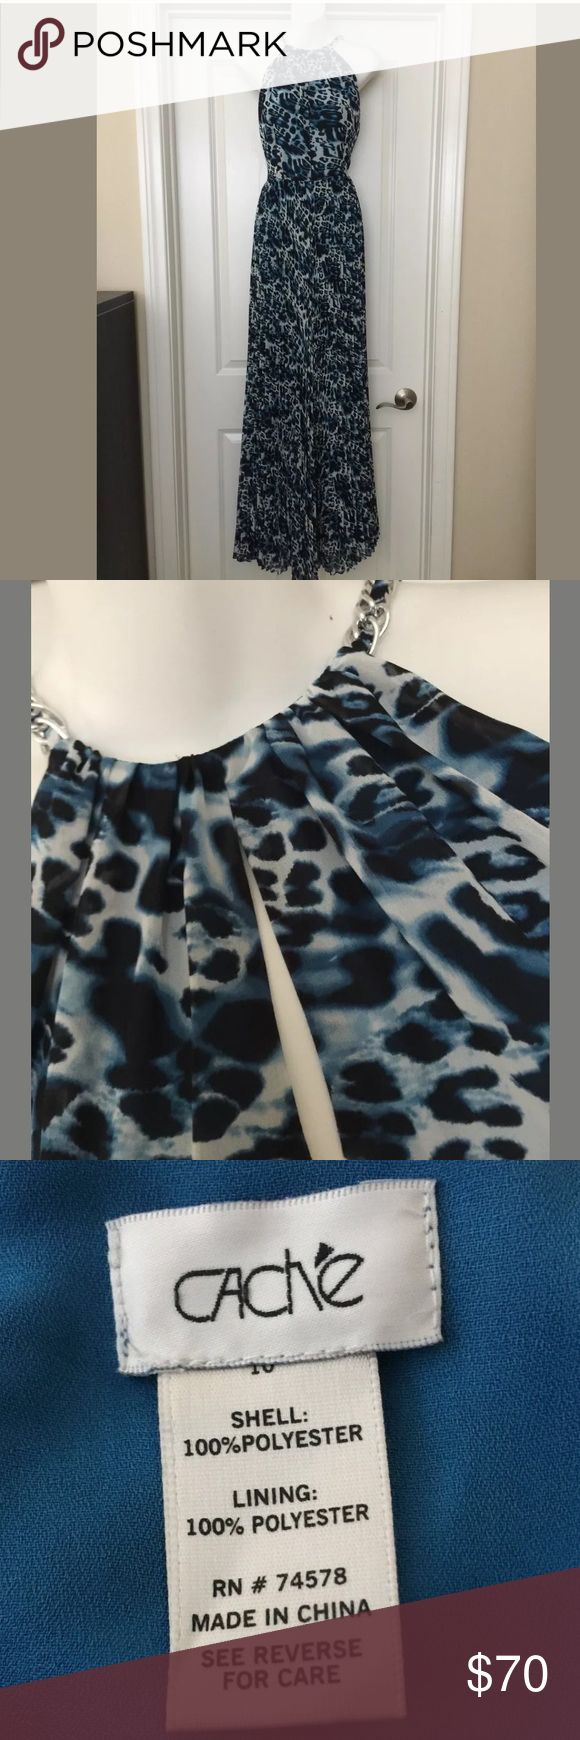 """New Cache leopard maxi dress gown formal Sz 10 Gorgeous Cache gown !  Front & back keyhole design  Side zip Size 10 New without tags    Bust 17.75"""" Waist 15.5"""" Length 63""""   Smoke/pet free home Cache Dresses Maxi"""